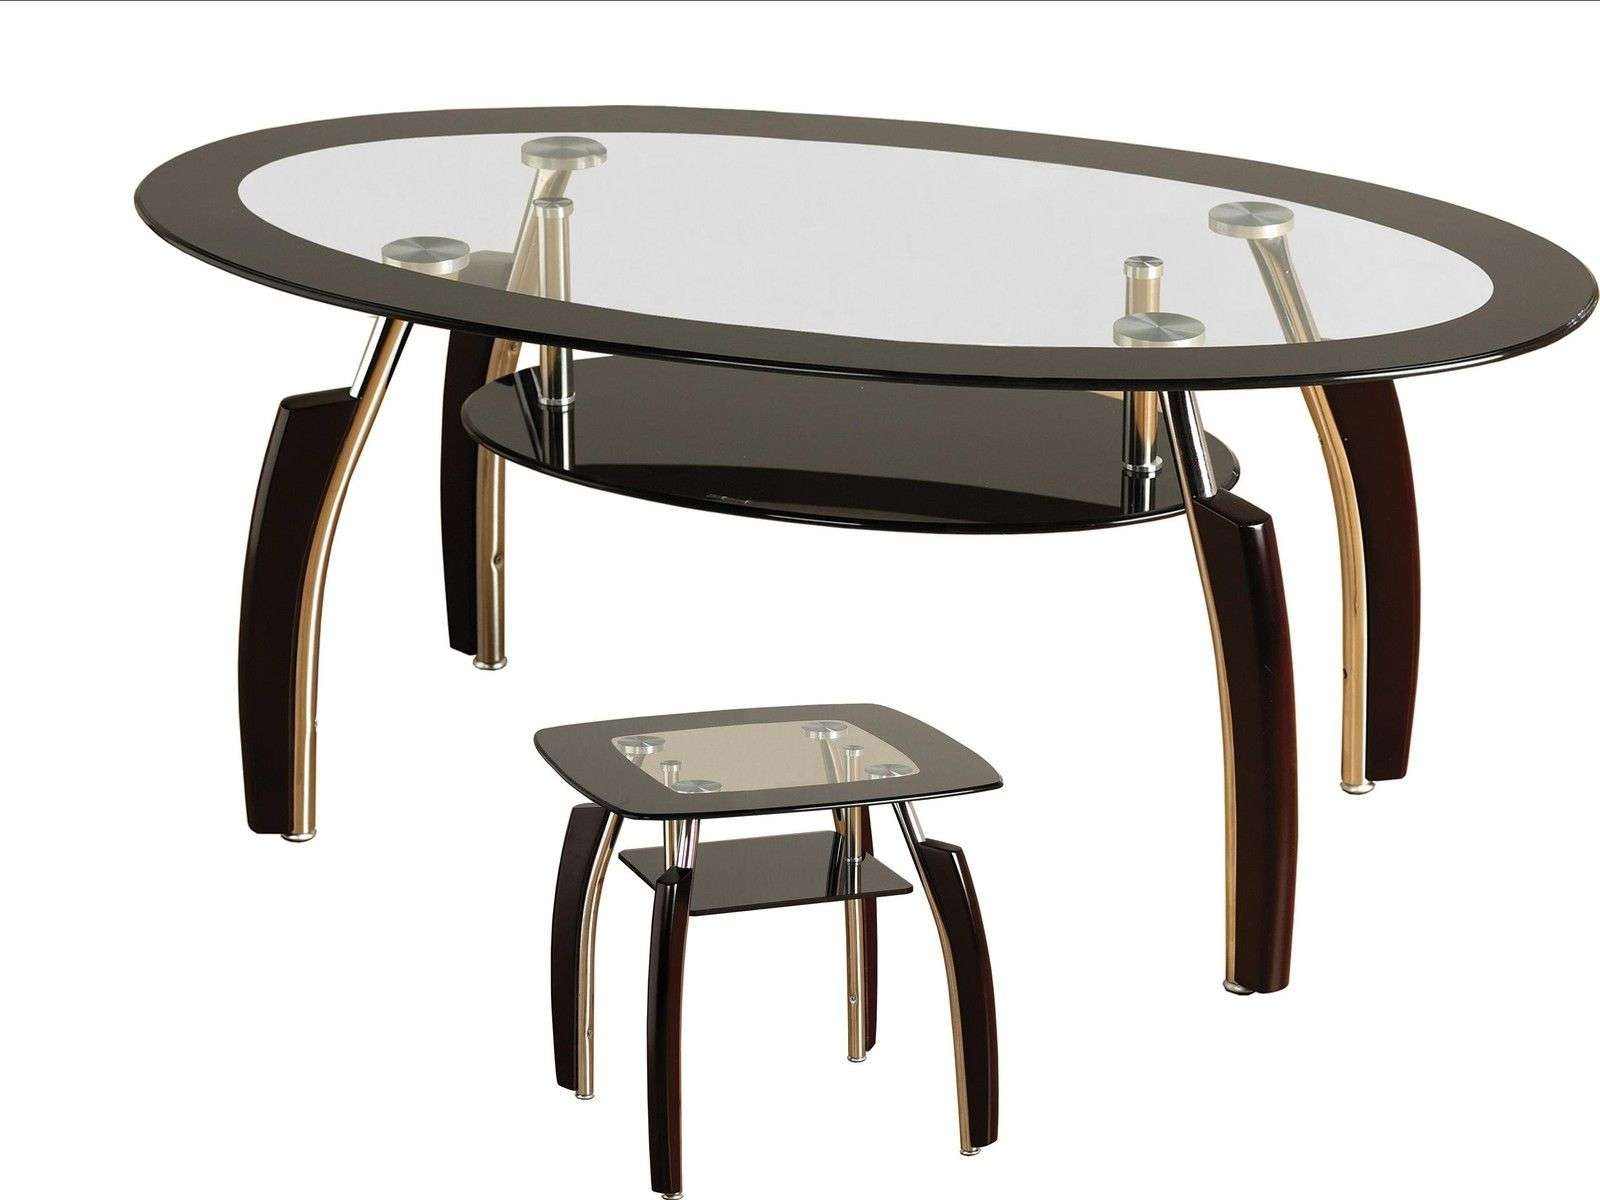 Seconique Elena Coffee Table & Lamp Table – Clear Glass, Chrome Throughout Popular Elena Coffee Tables (View 20 of 20)